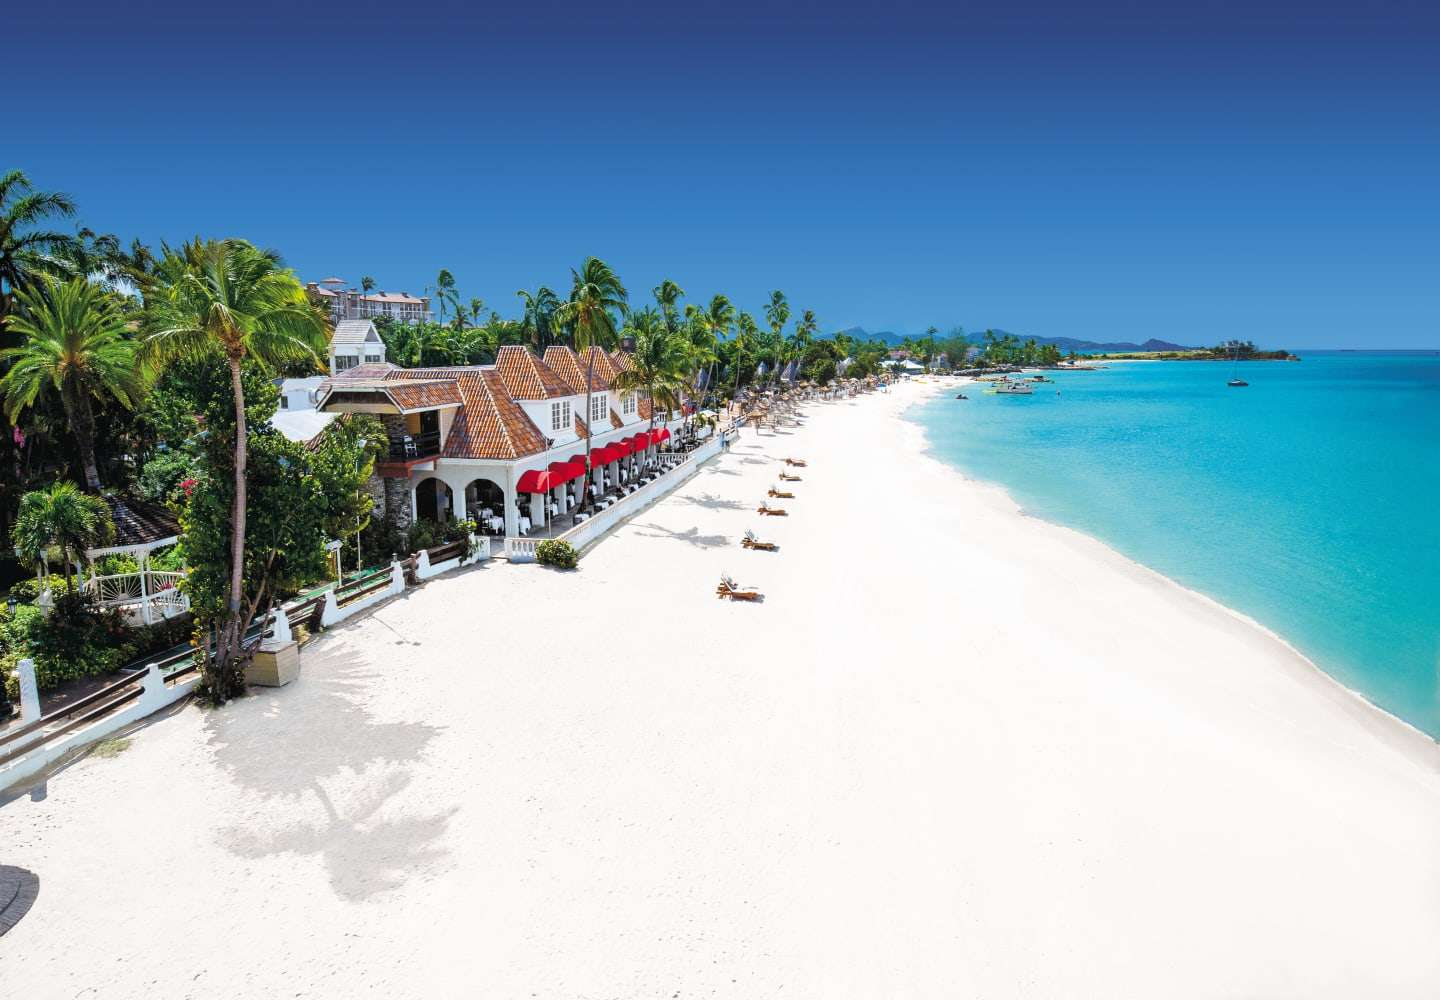 Sandals Grande Antigua Resort & Spa, Saint John's, Antigua